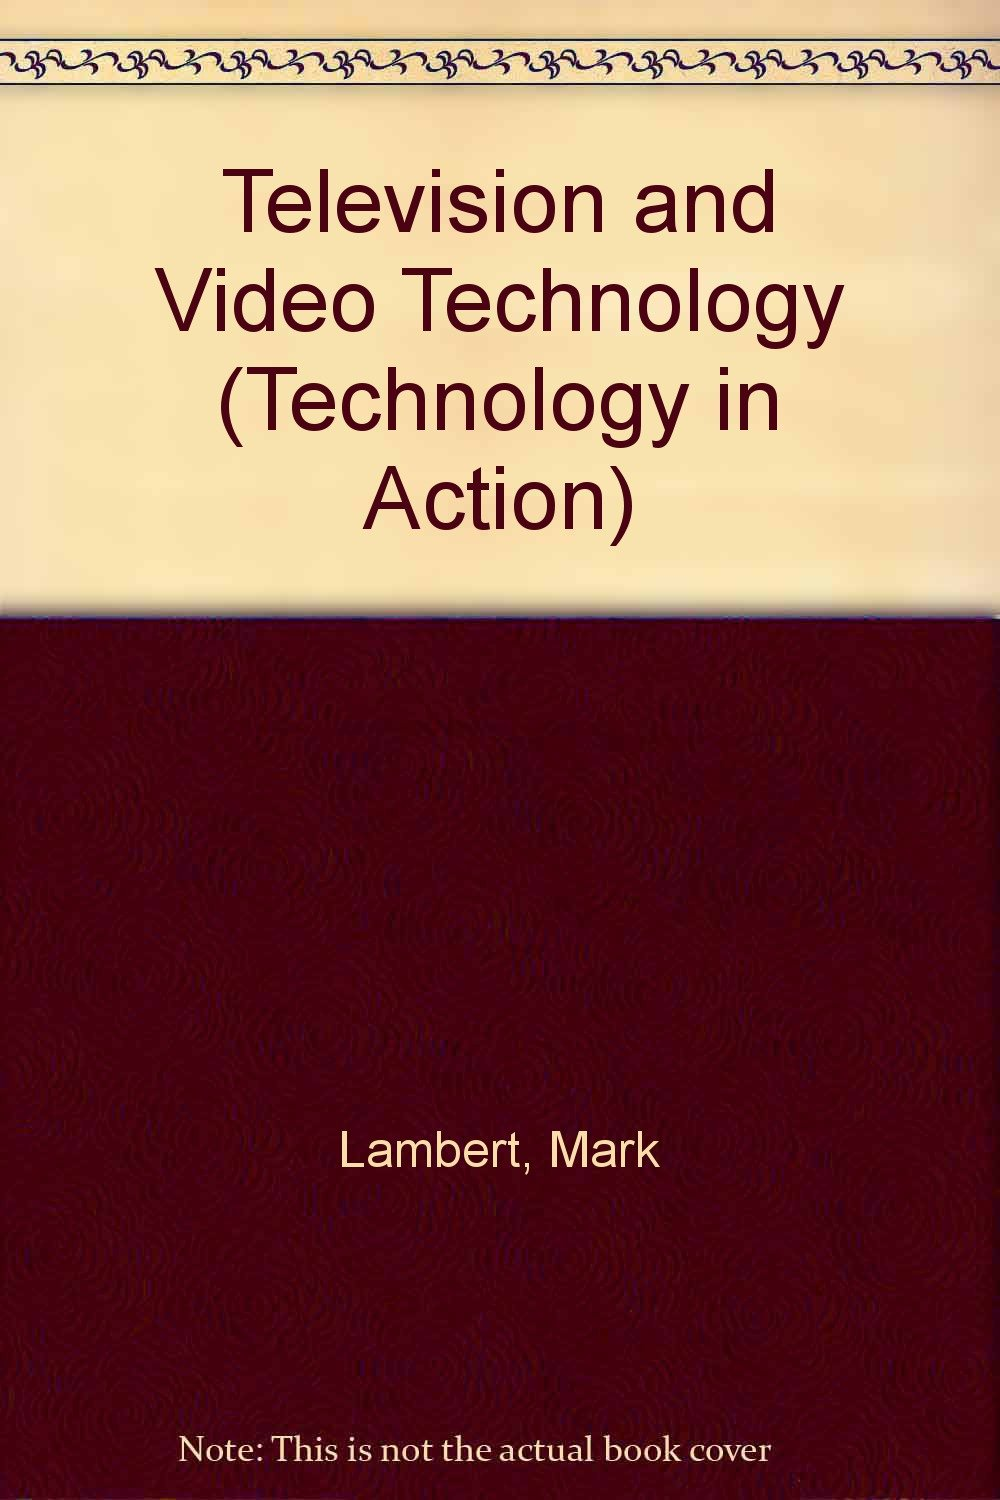 Television and Video Technology (Technology in Action)